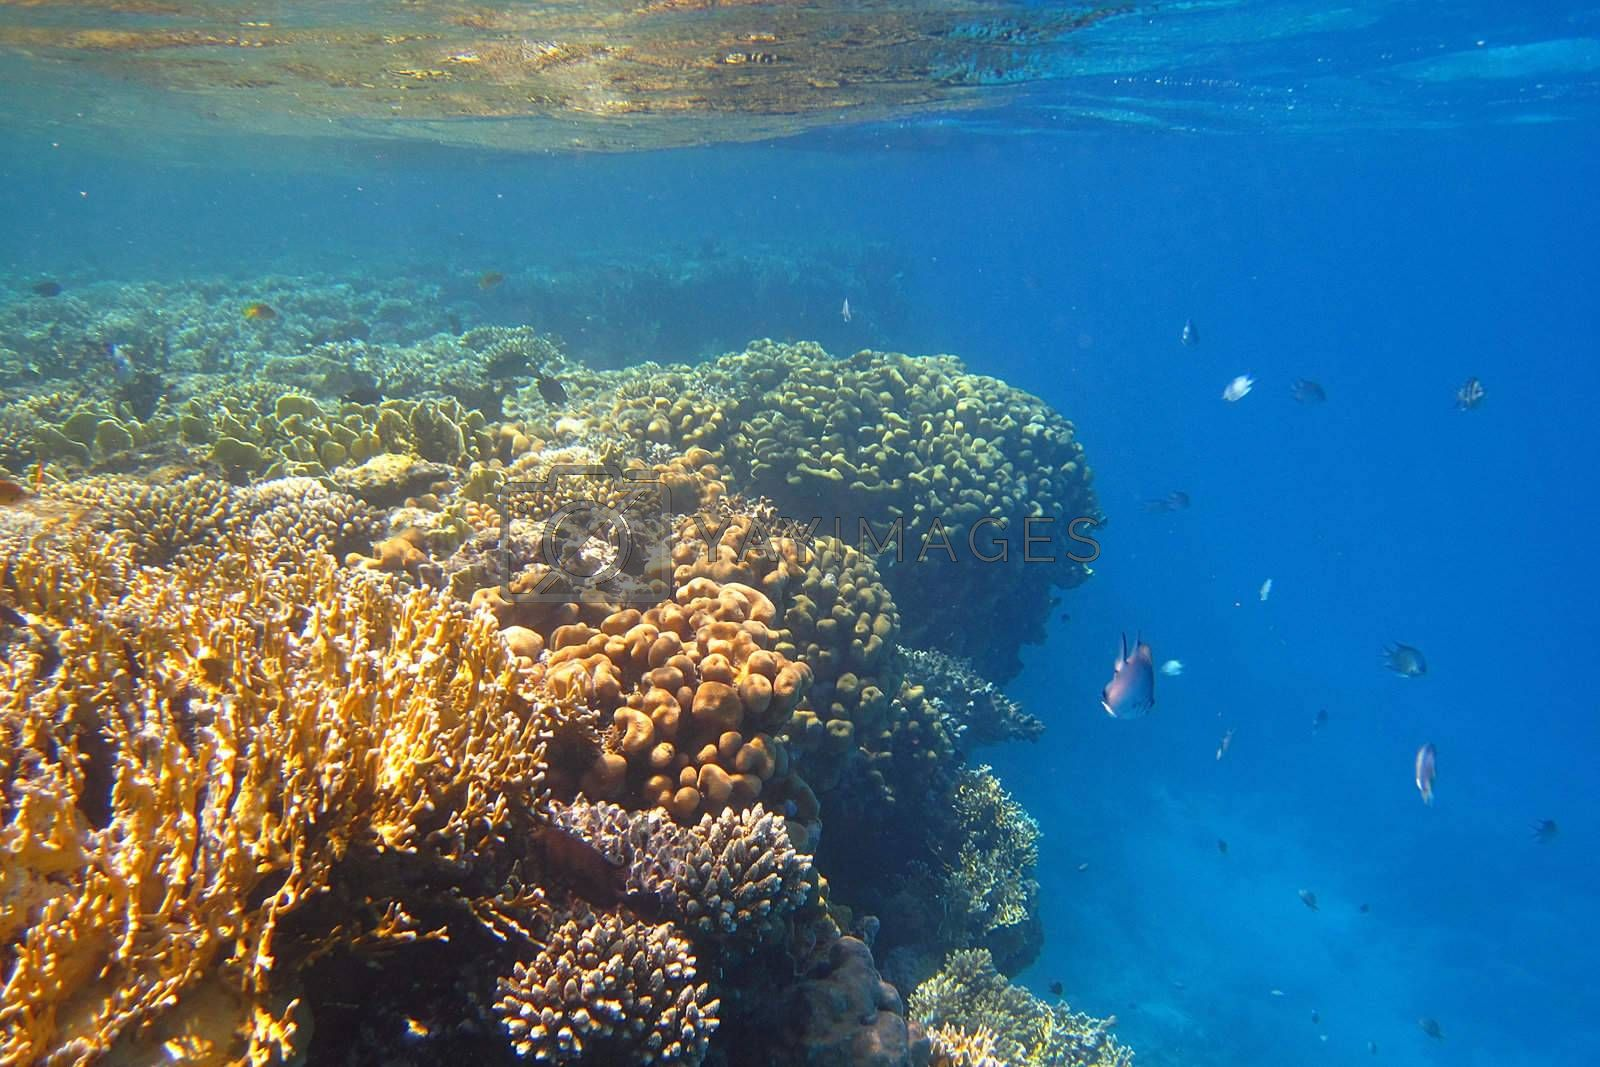 colorful coral reef in clear water with any amount of fish